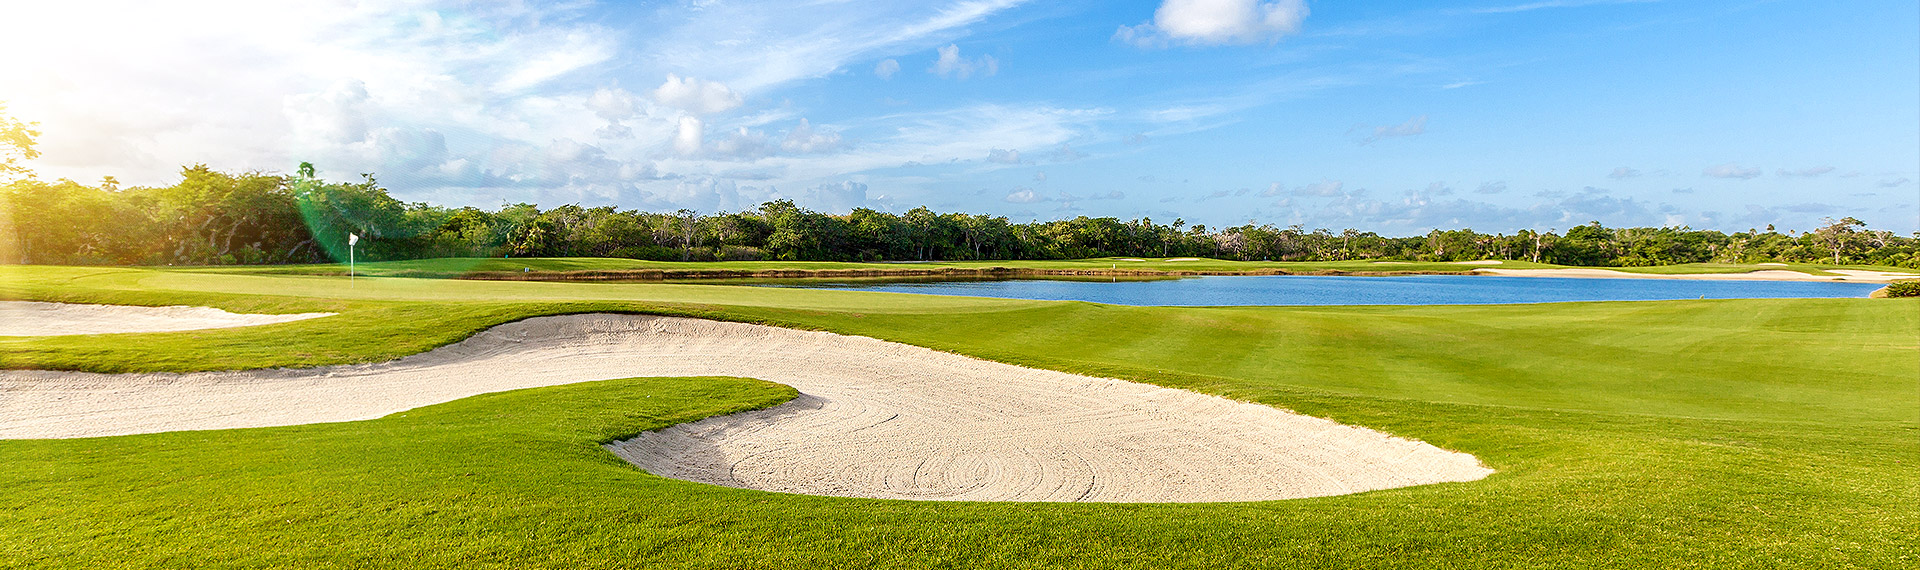 Exclusive fields for lovers Cancun golf